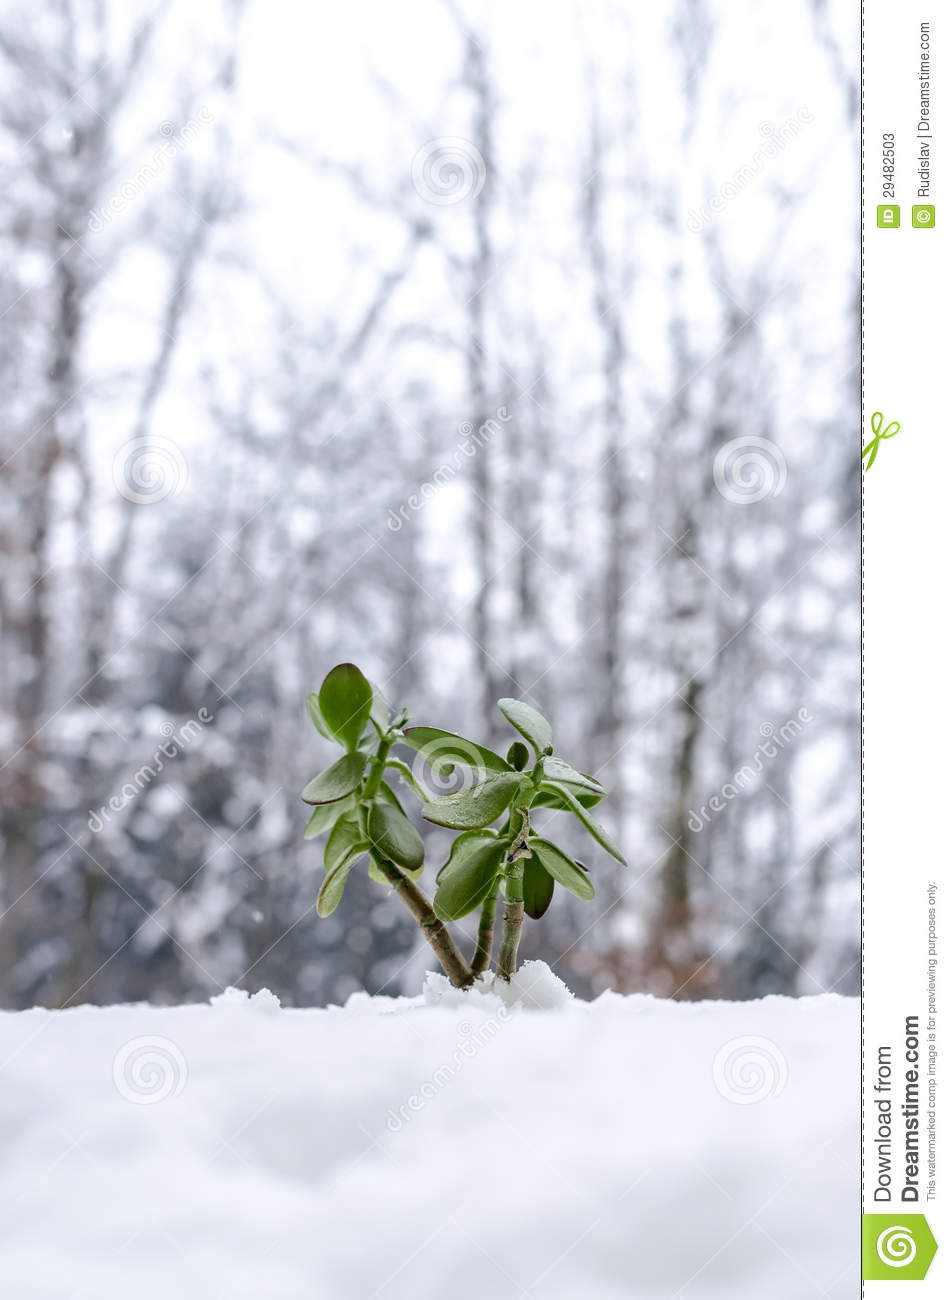 Environmental Hope >> Plant In The Winter Growing Out Of Snow Stock Image - Image: 29482503